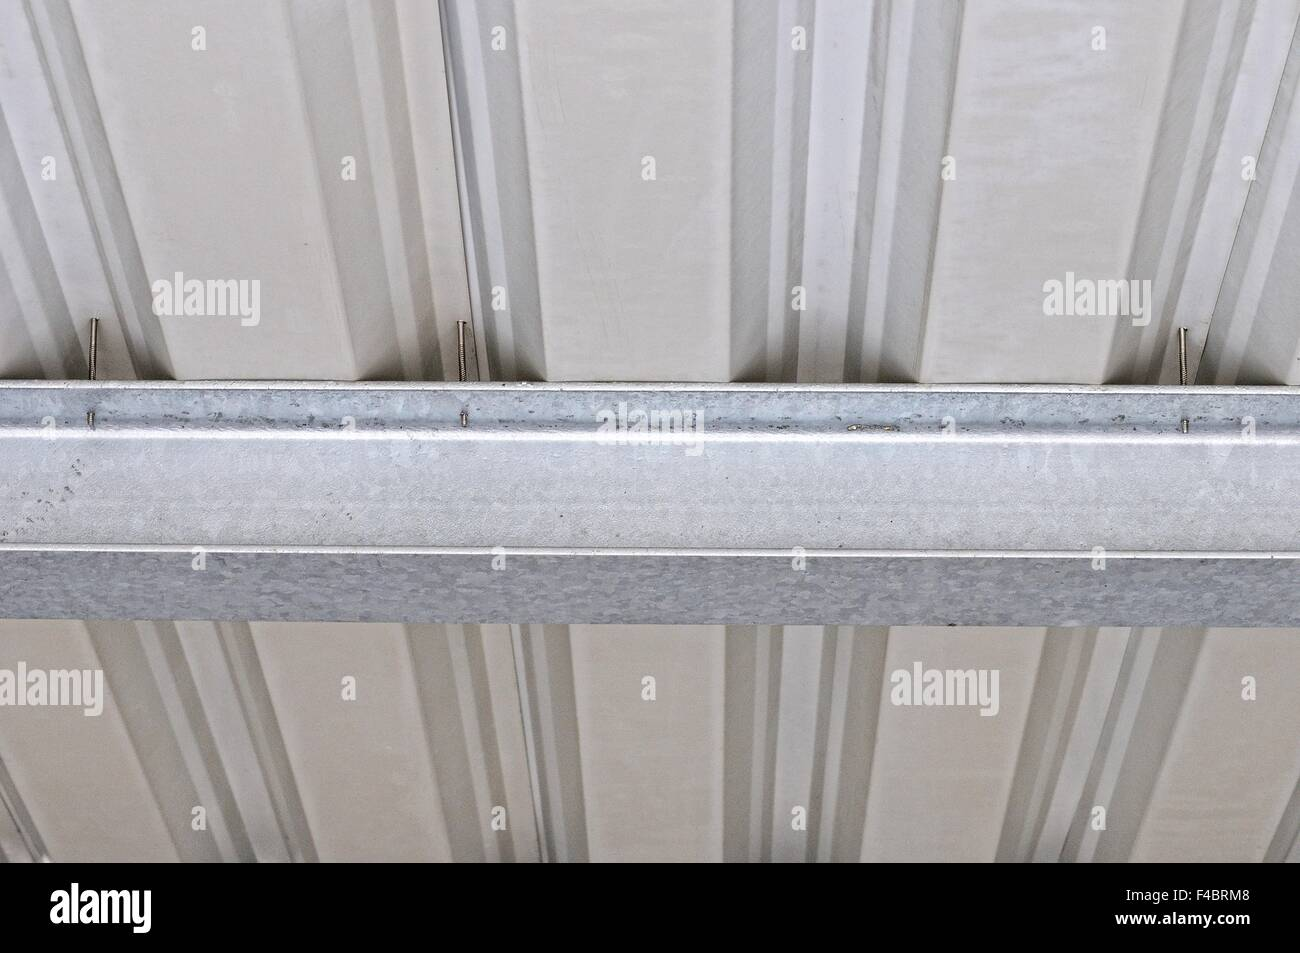 Shed roof attachment to steel beam - Stock Image